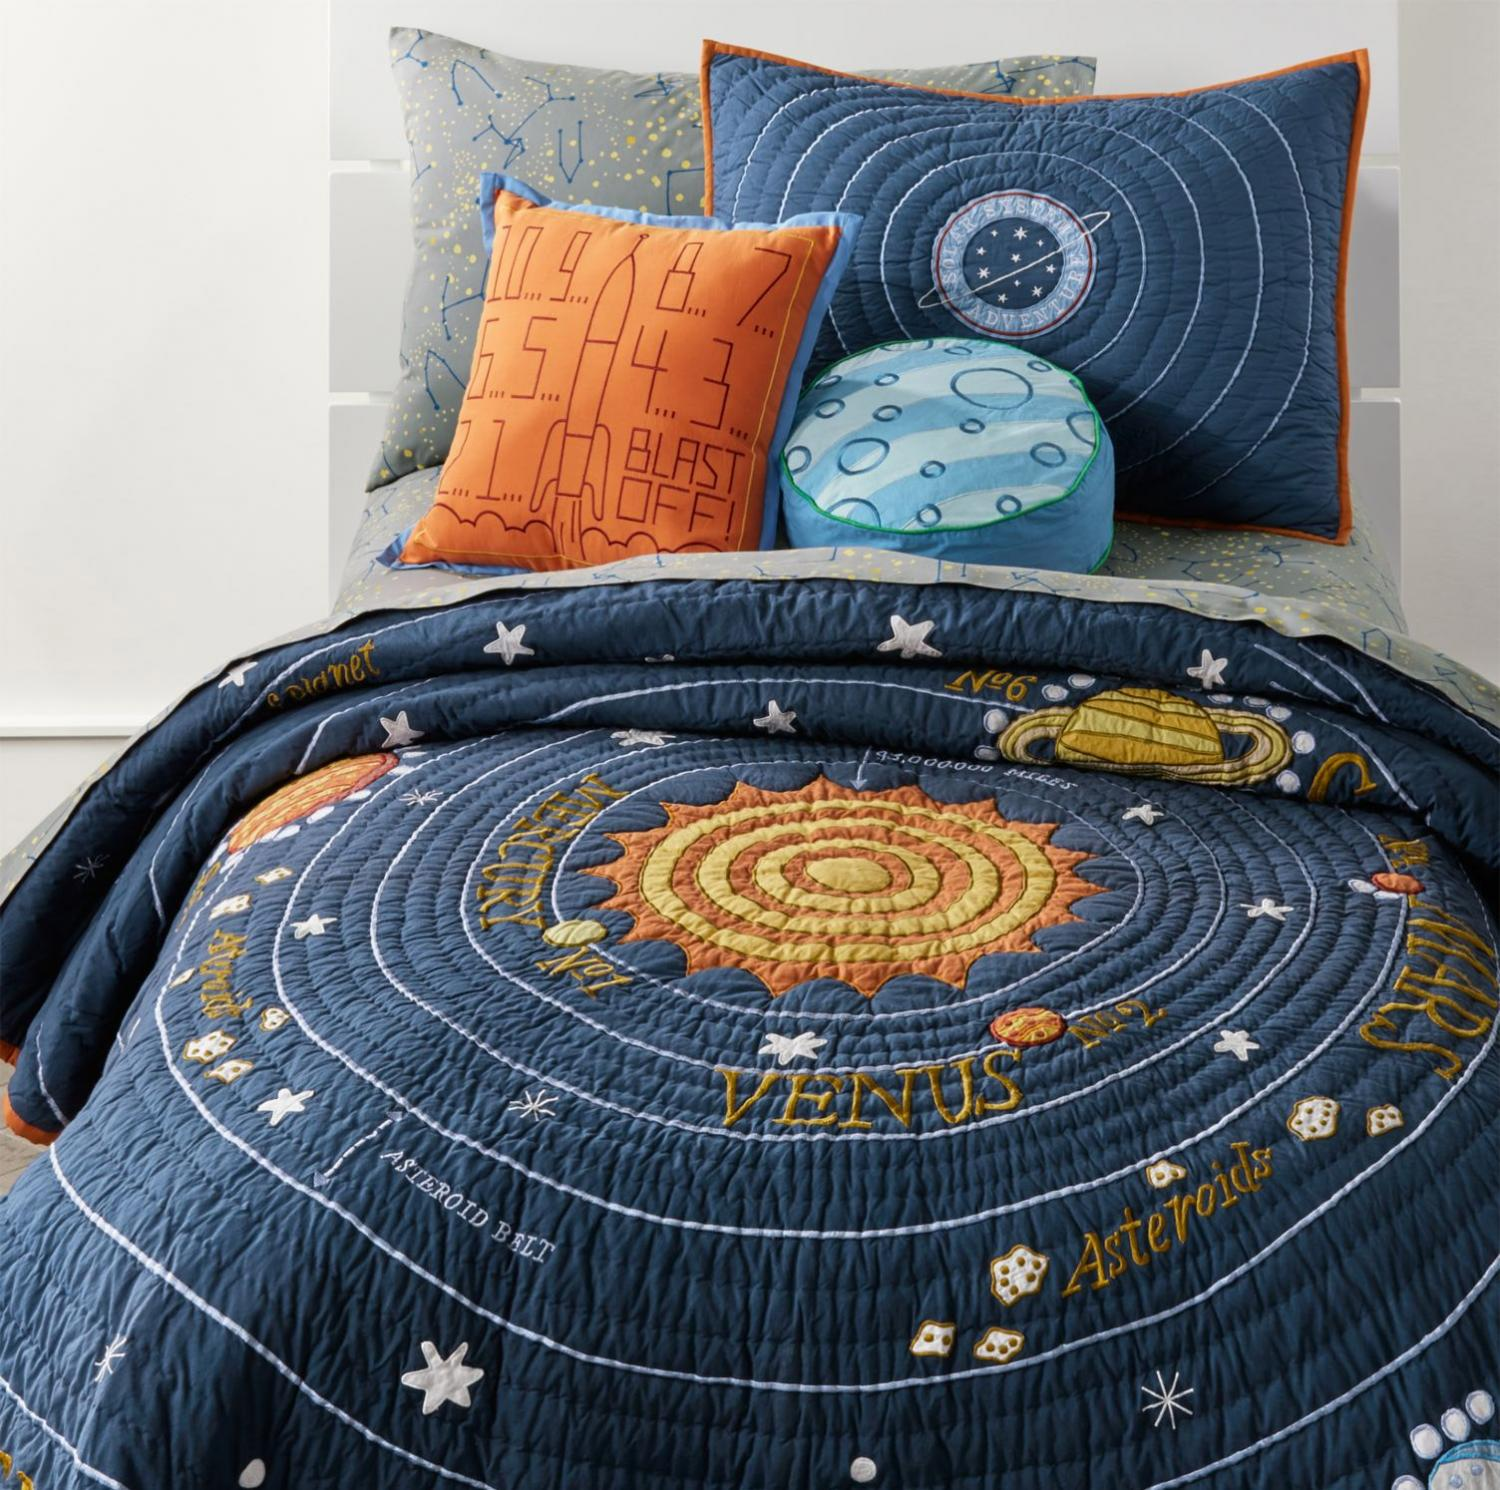 Space Themed Toddler Quilt - Helps babies and kids learn about space